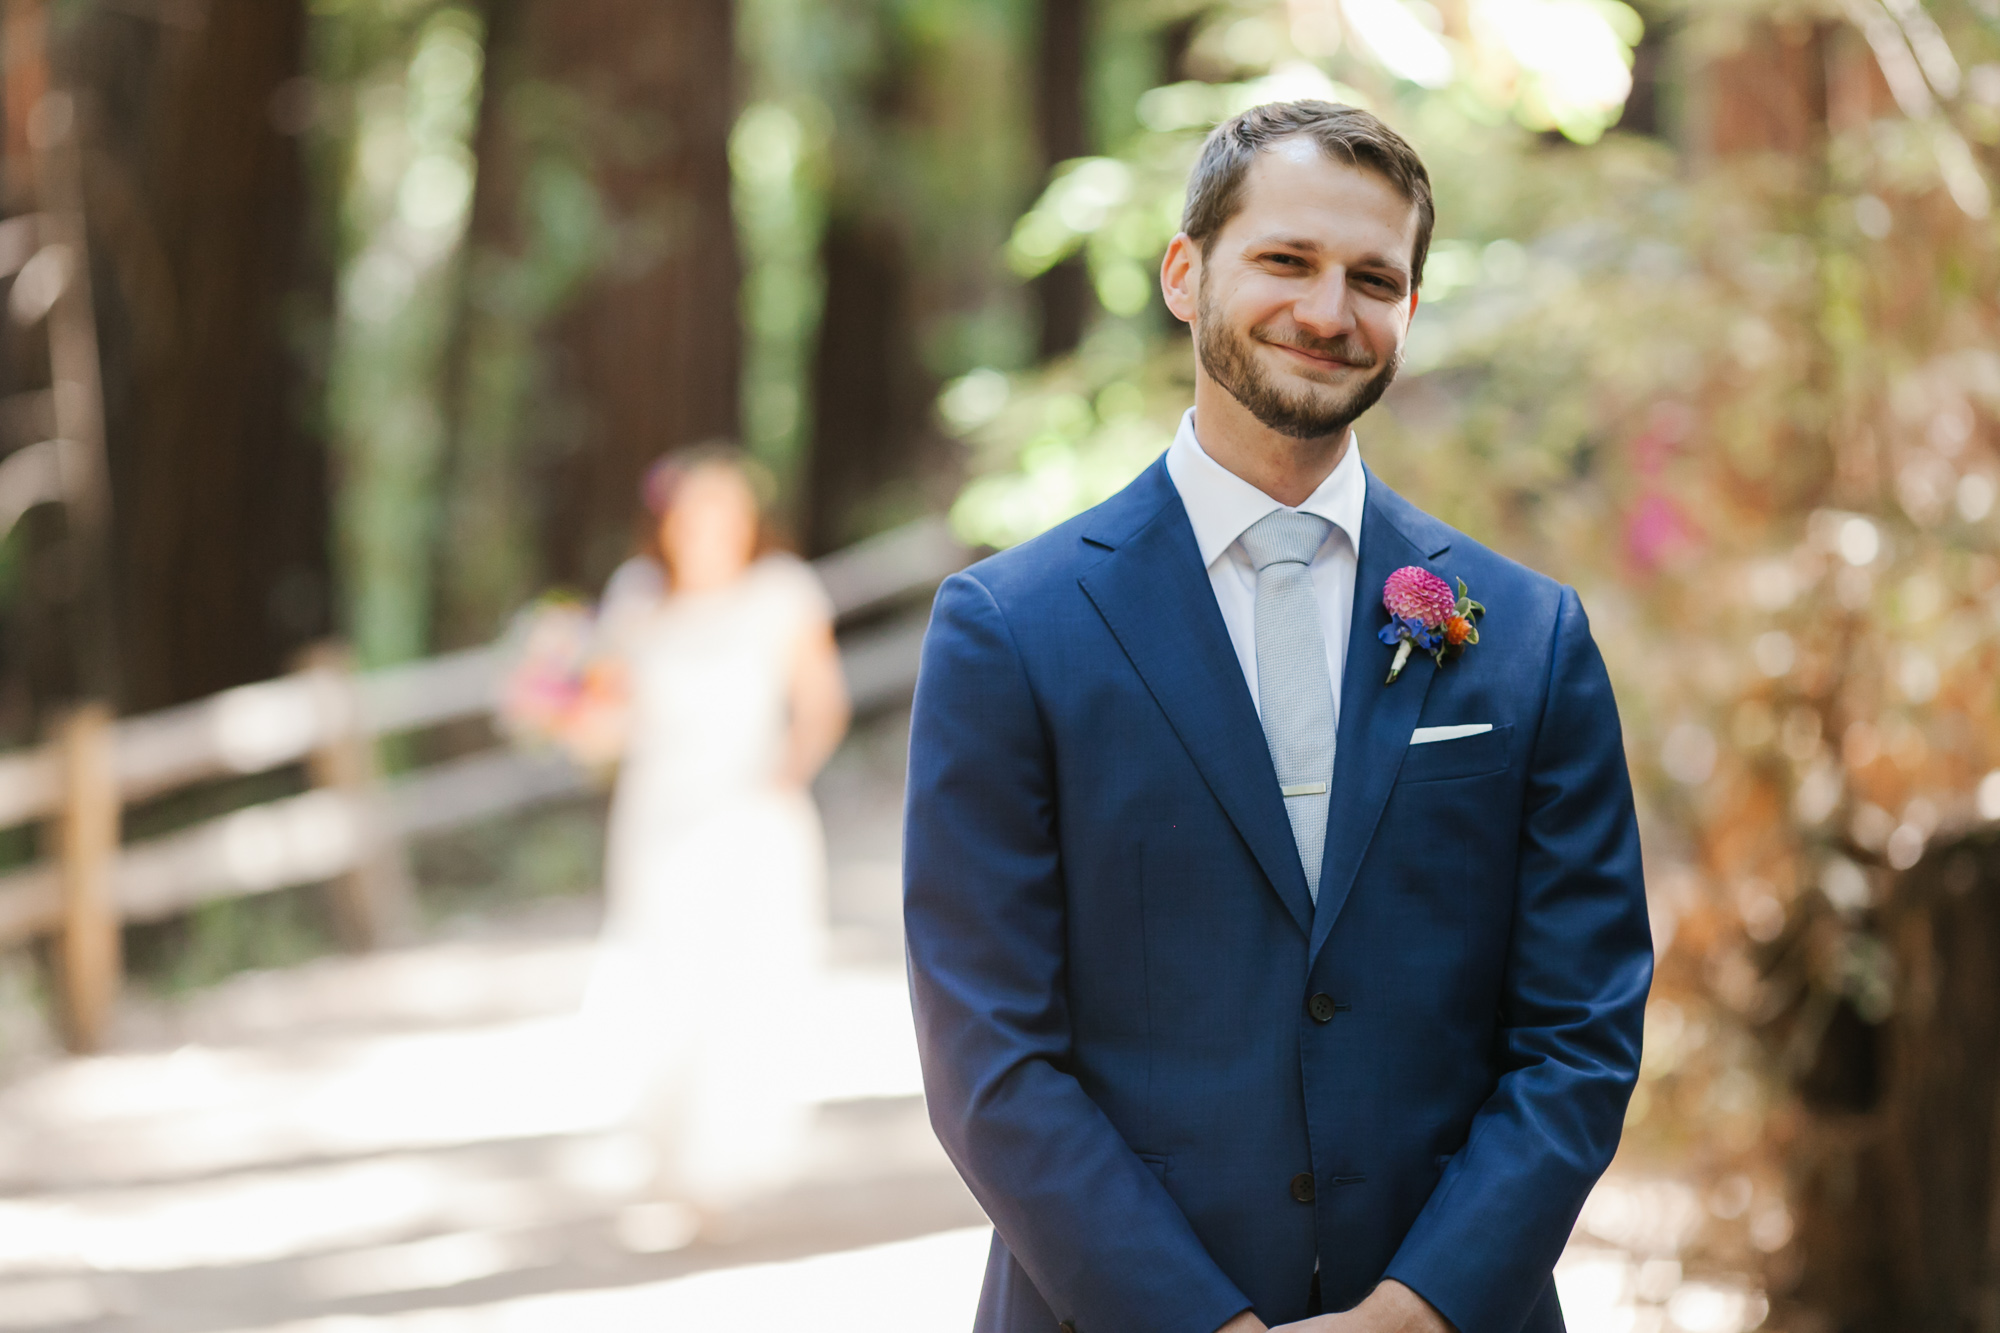 Groom in blue suit smiles as his bride walks up behind him for their first look